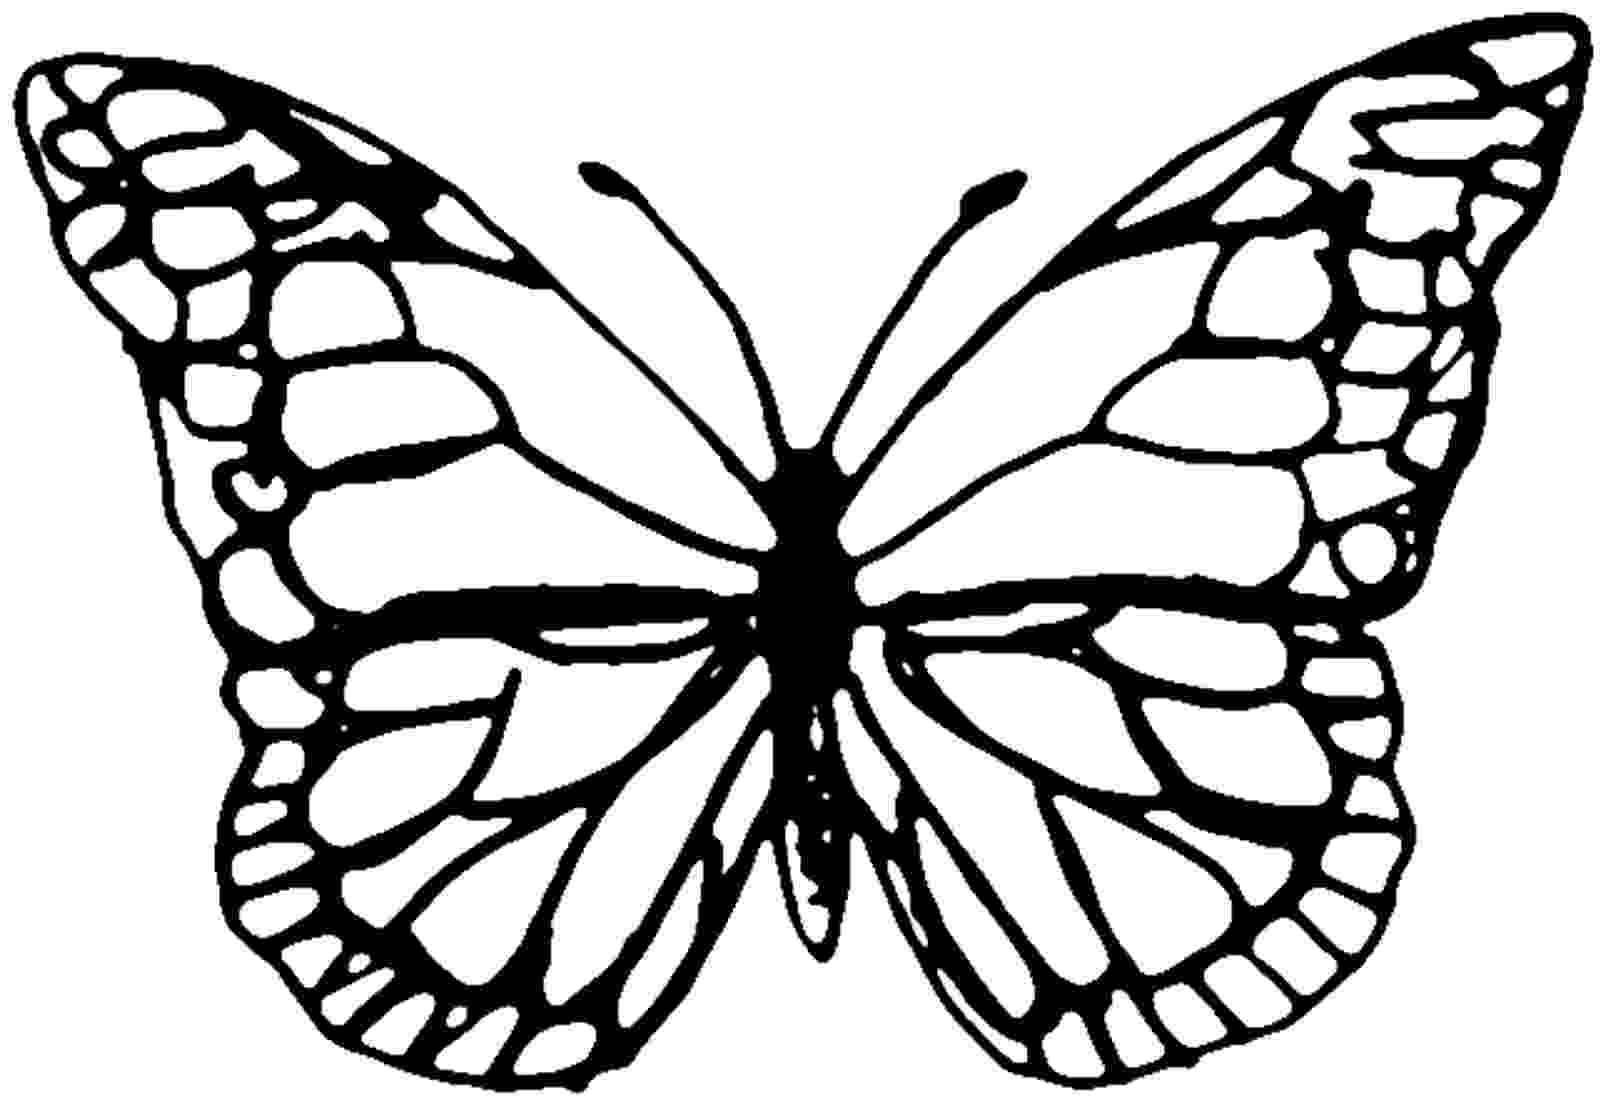 template of butterfly for colouring coloring page butterfly printable butterfly coloring template of colouring butterfly for